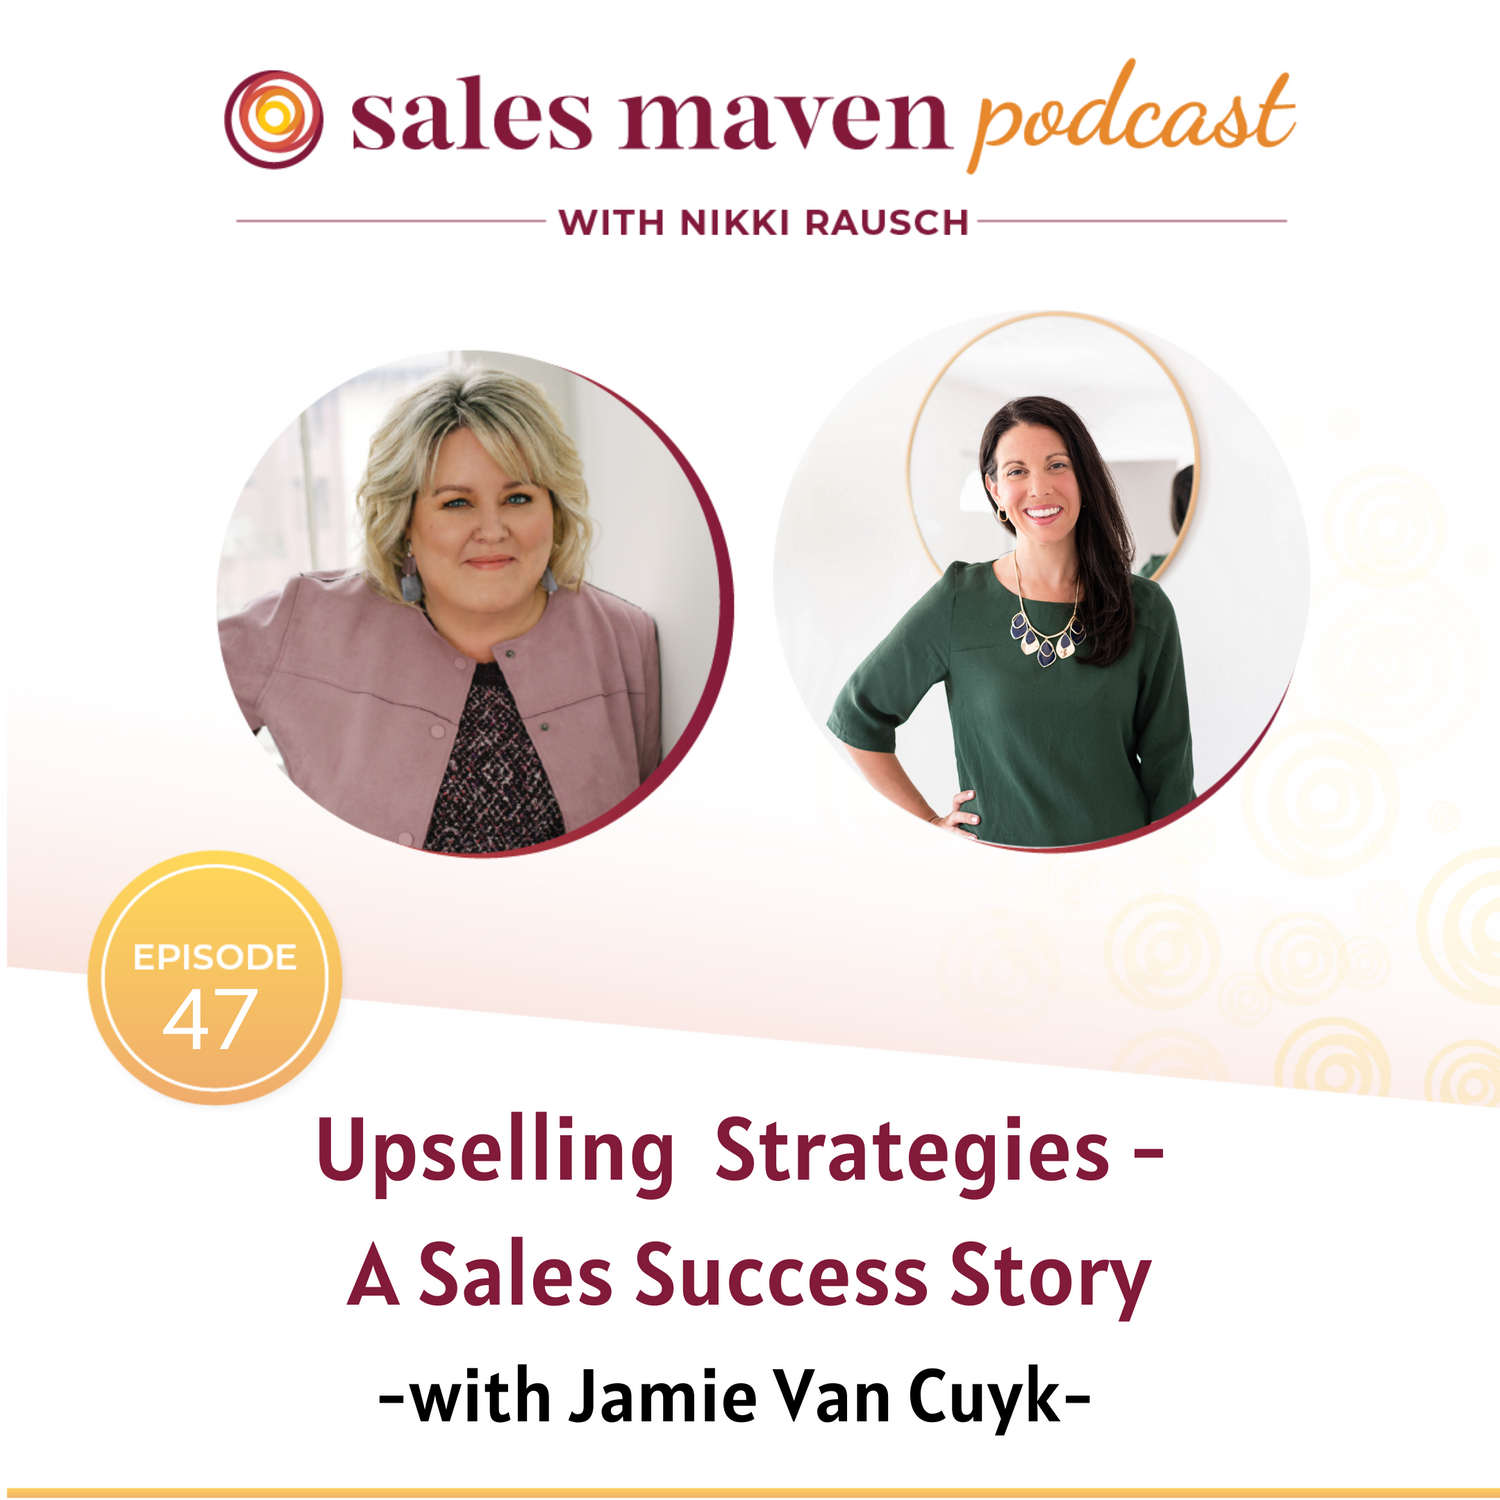 Sales Maven Podcast - Upselling Strategies with Jamie Van Cuyk